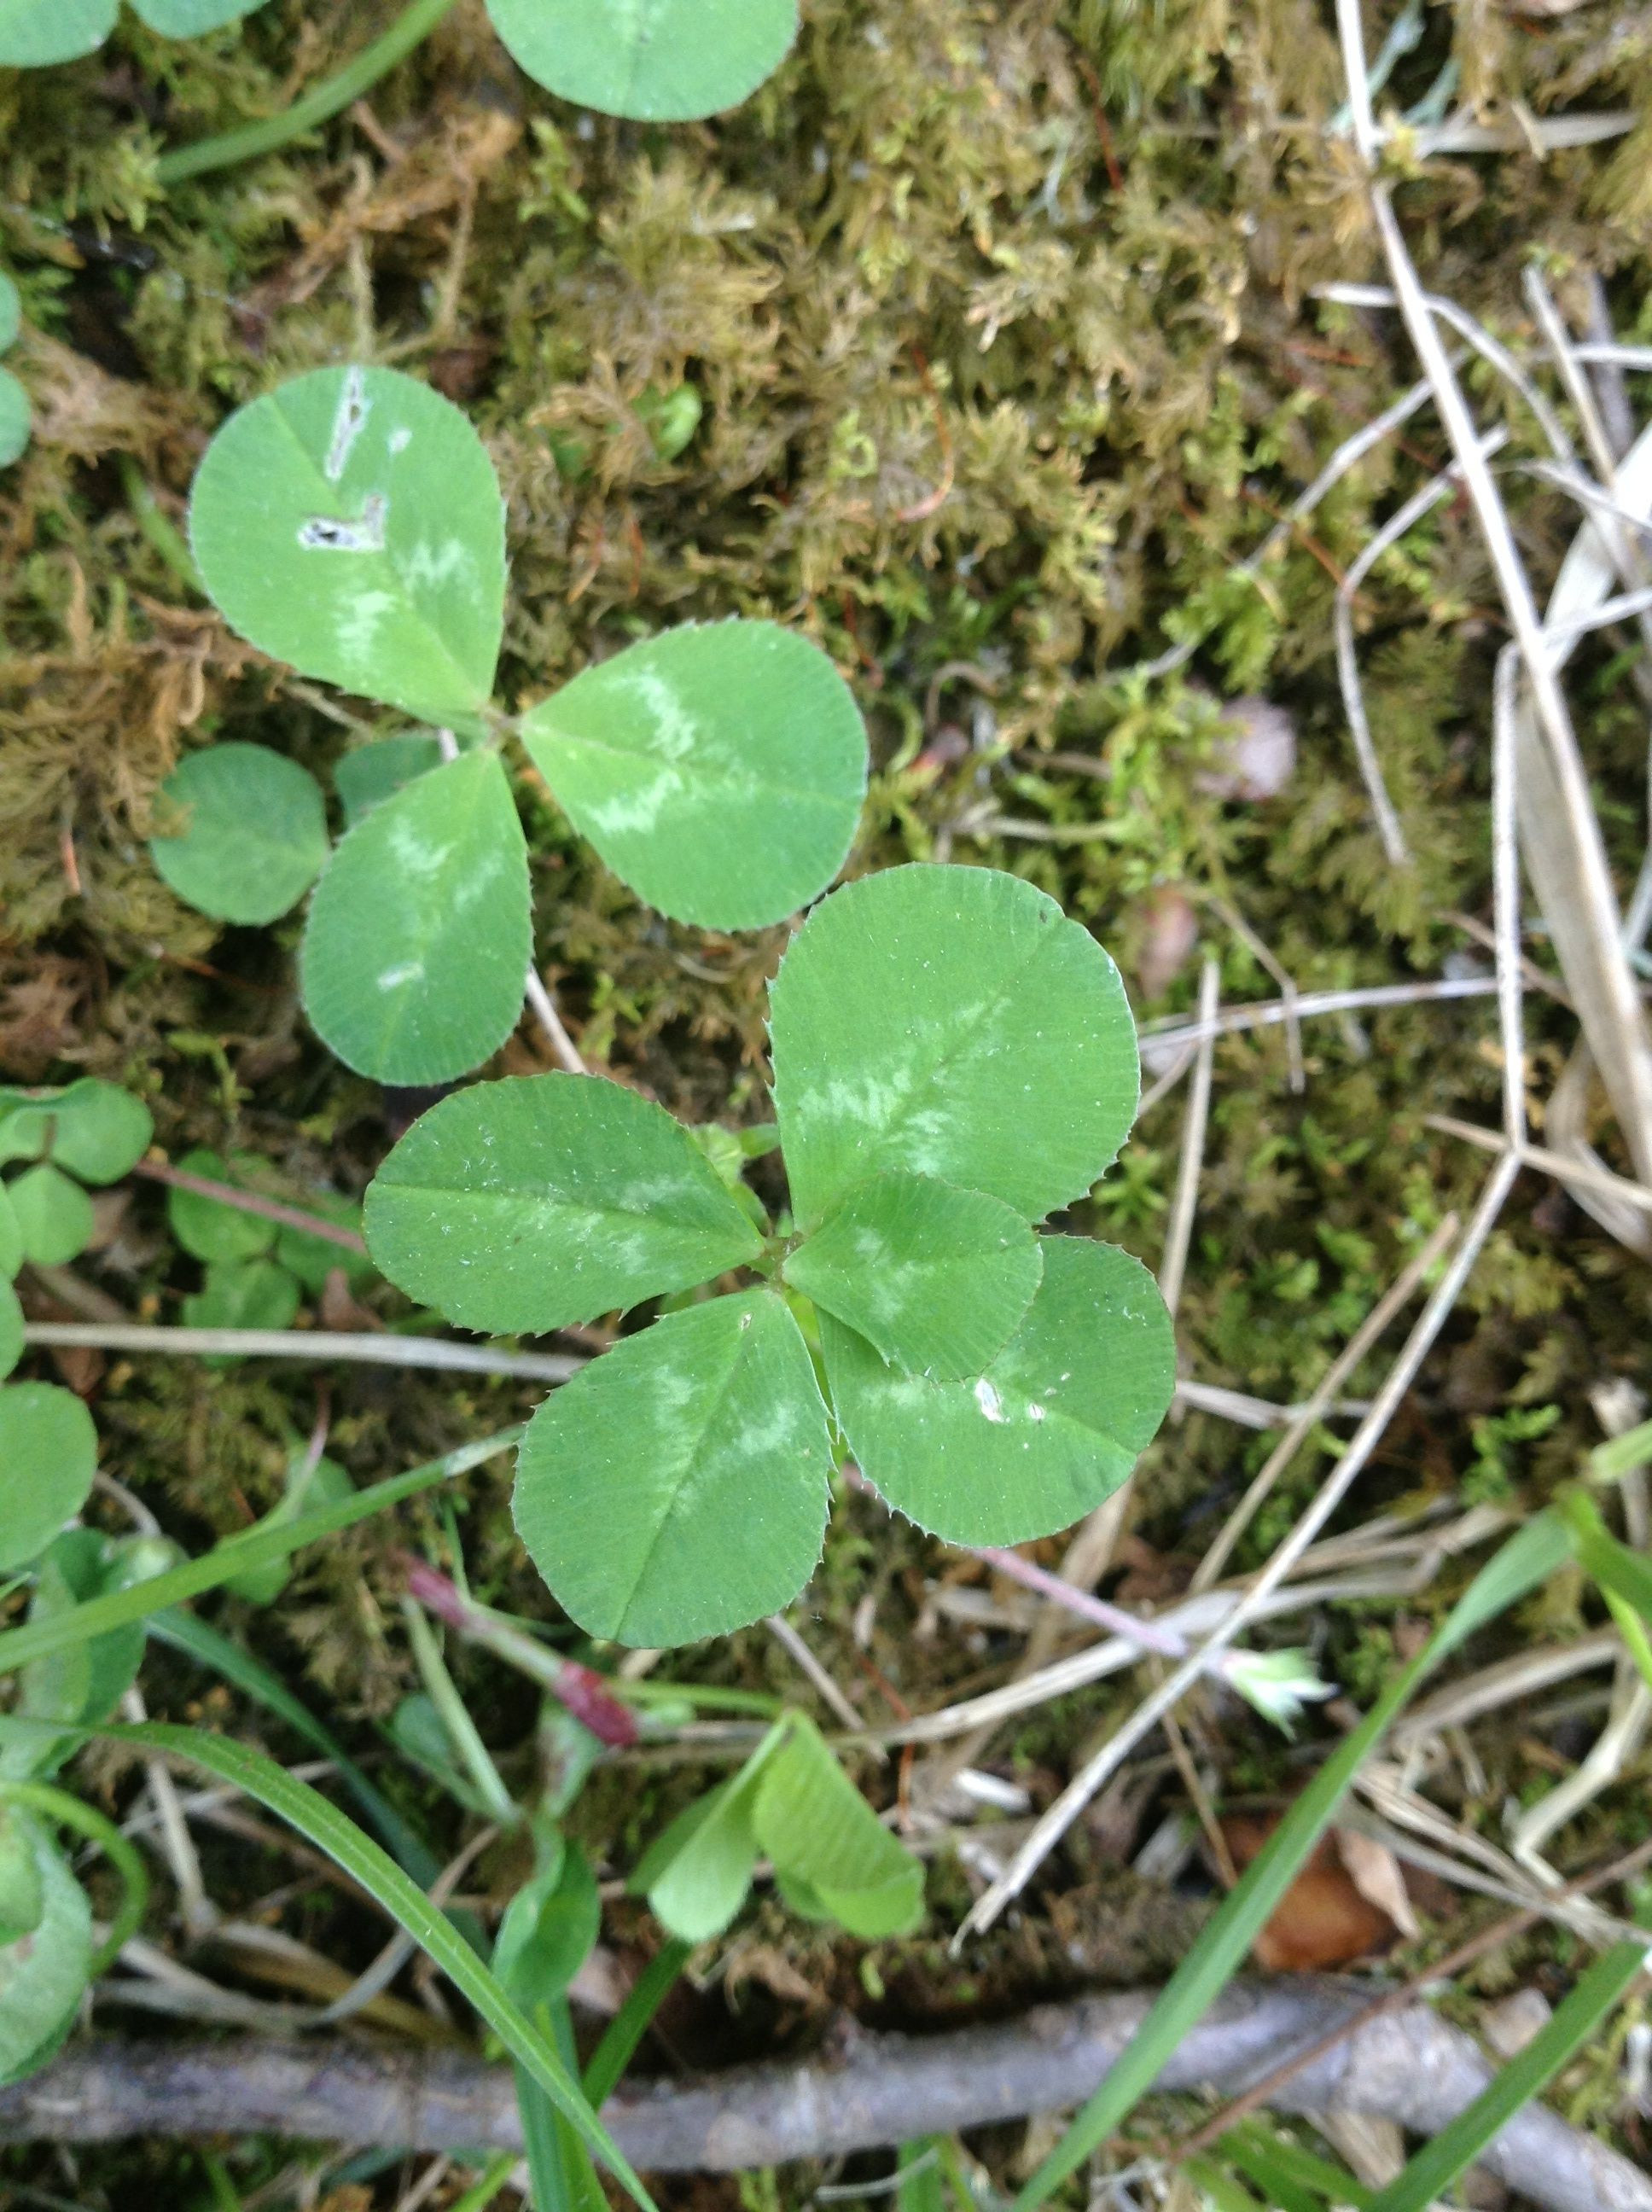 A rare five leaf clover this is even